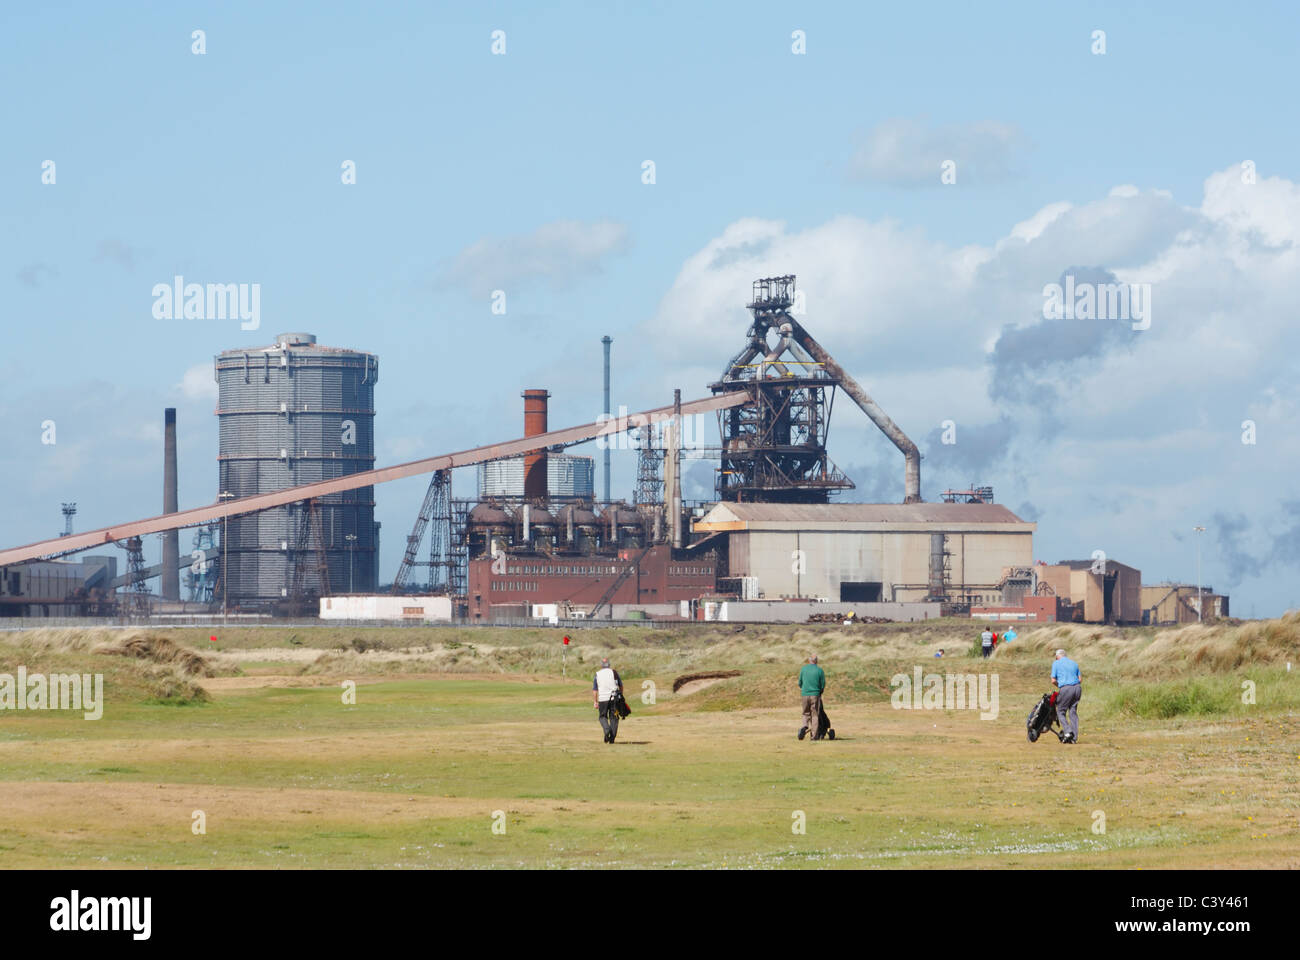 Redcar golf course with steelworks in background. Redcar, Cleveland, England, UK. - Stock Image